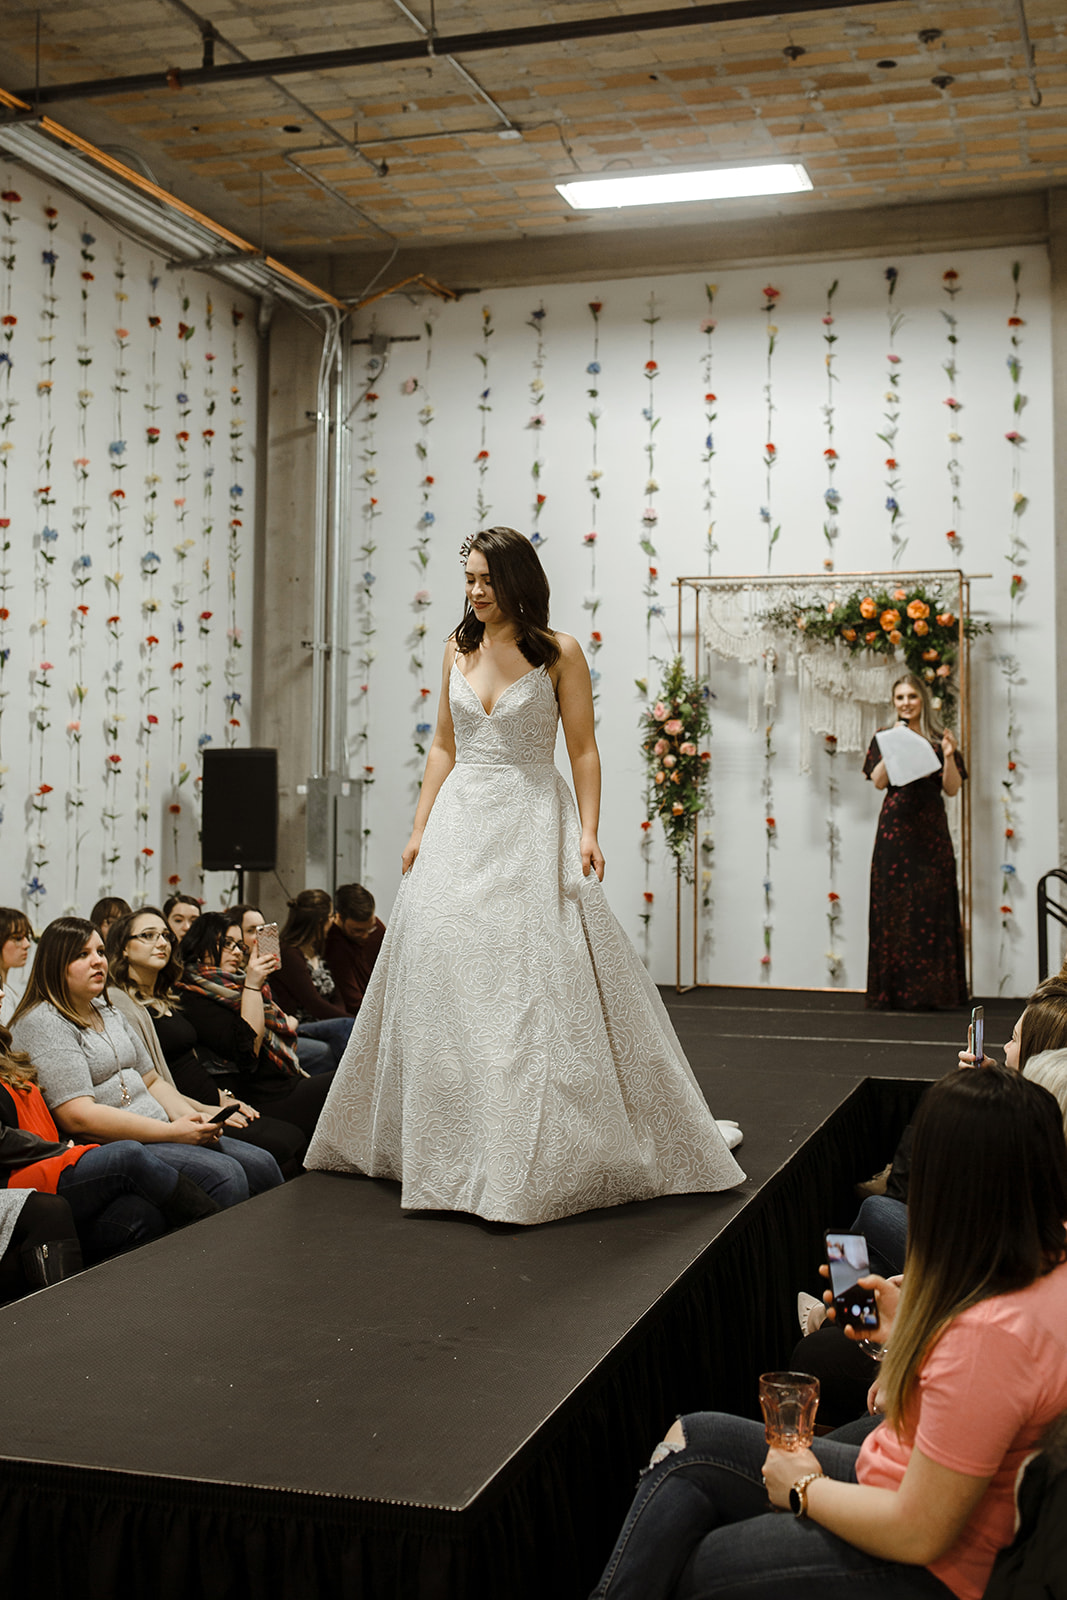 spokane wedding dress fashion show ballgown bridal model